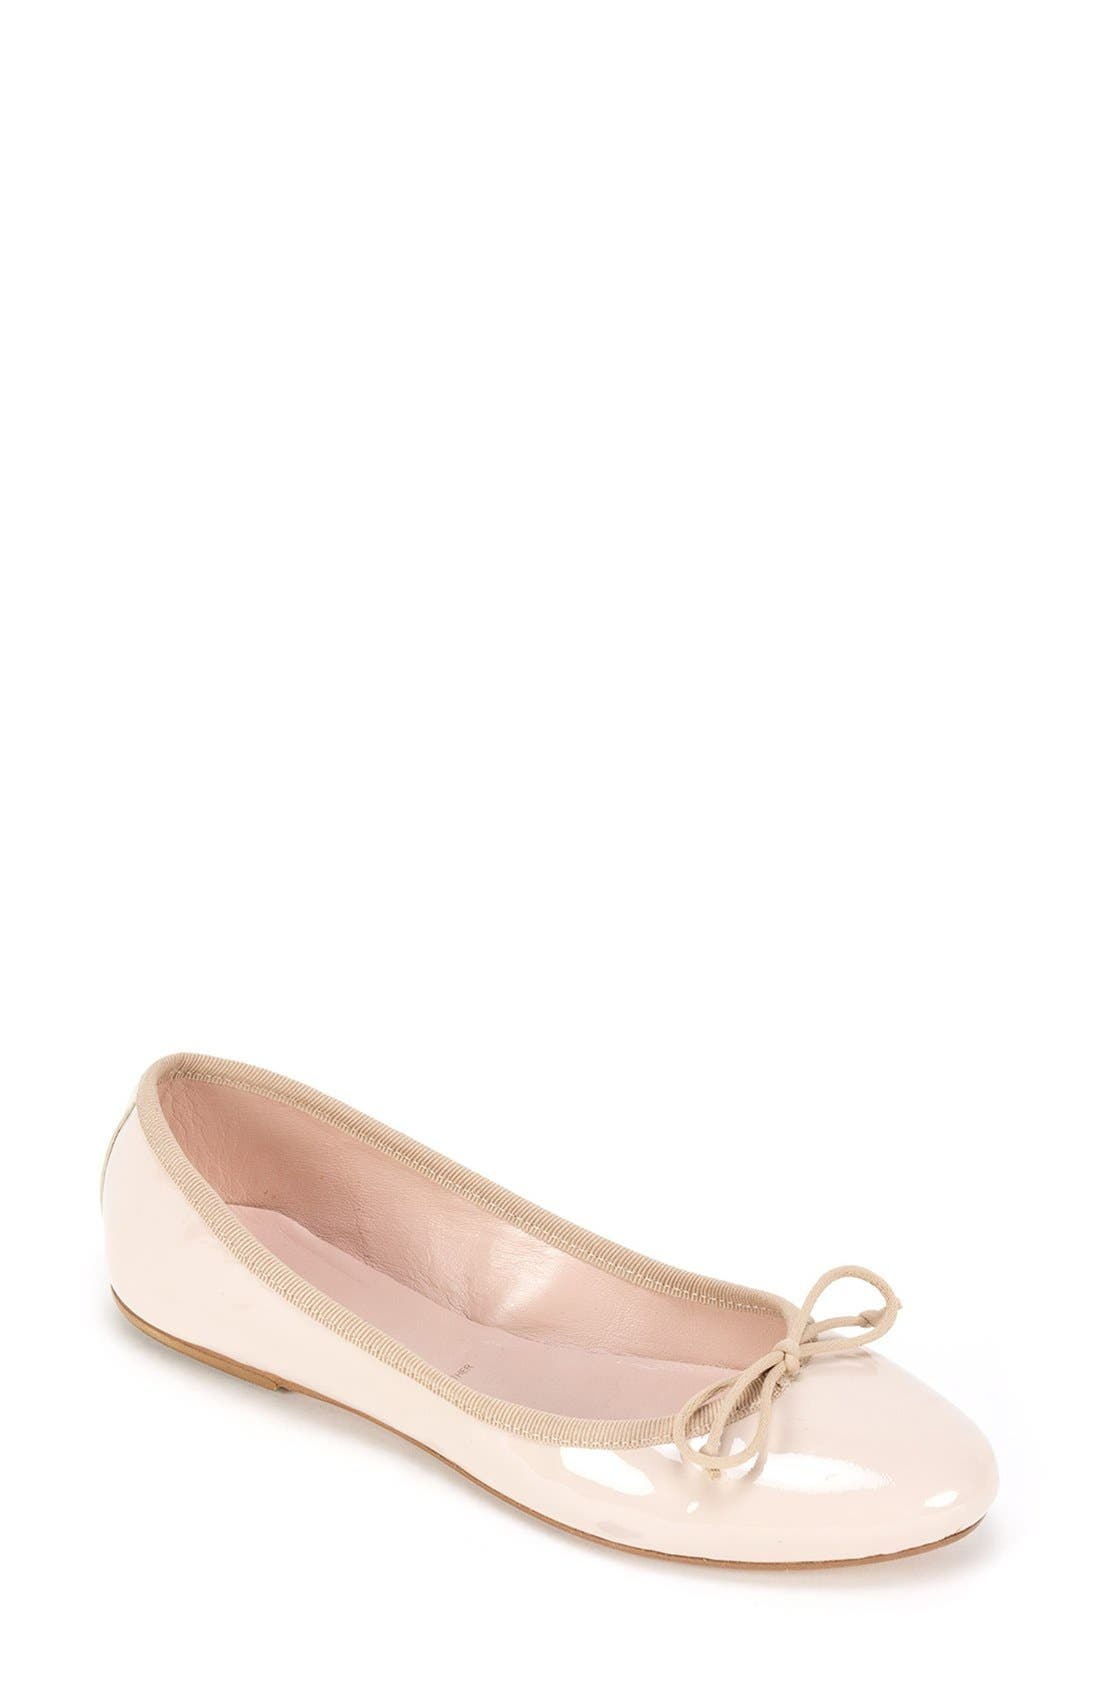 Summit 'Kendall' Ballet Flat,                         Main,                         color,